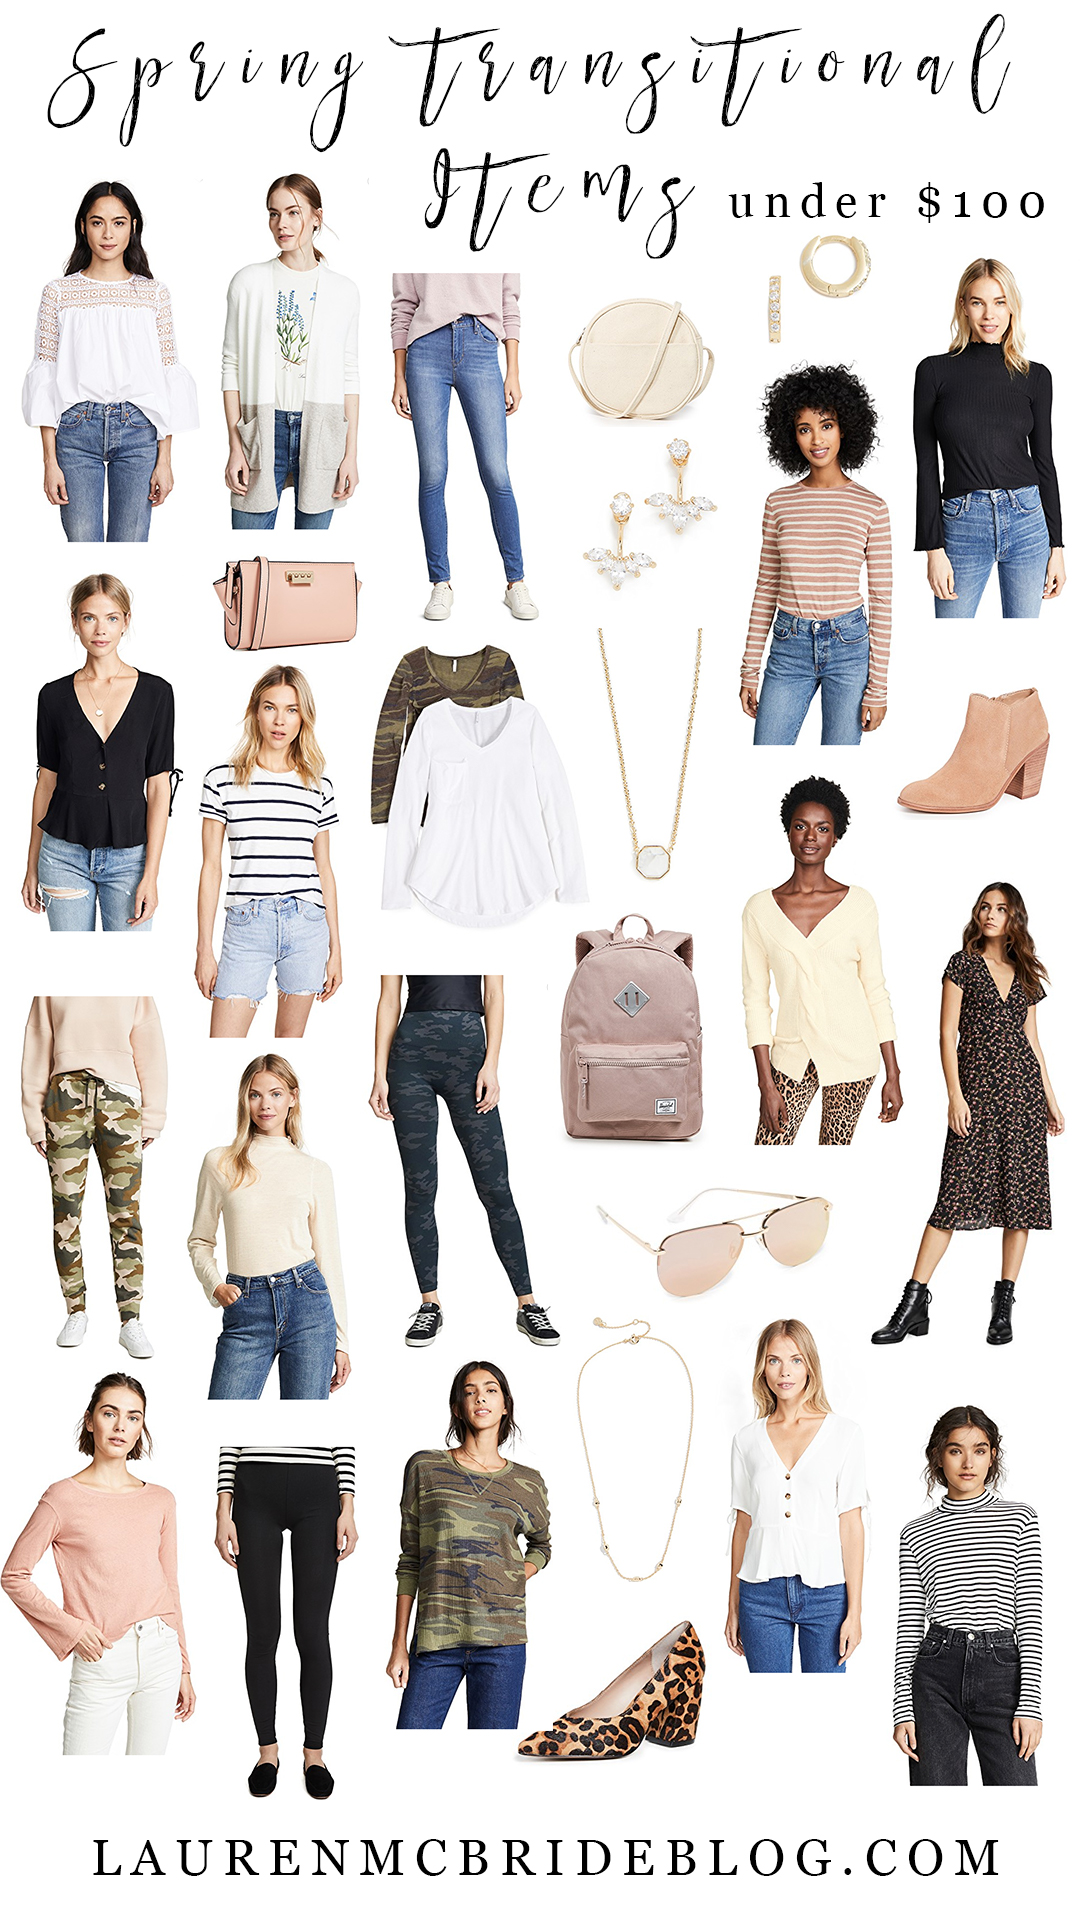 Connecticut life and style blogger Lauren McBride shares spring transitional pieces that are under $100.